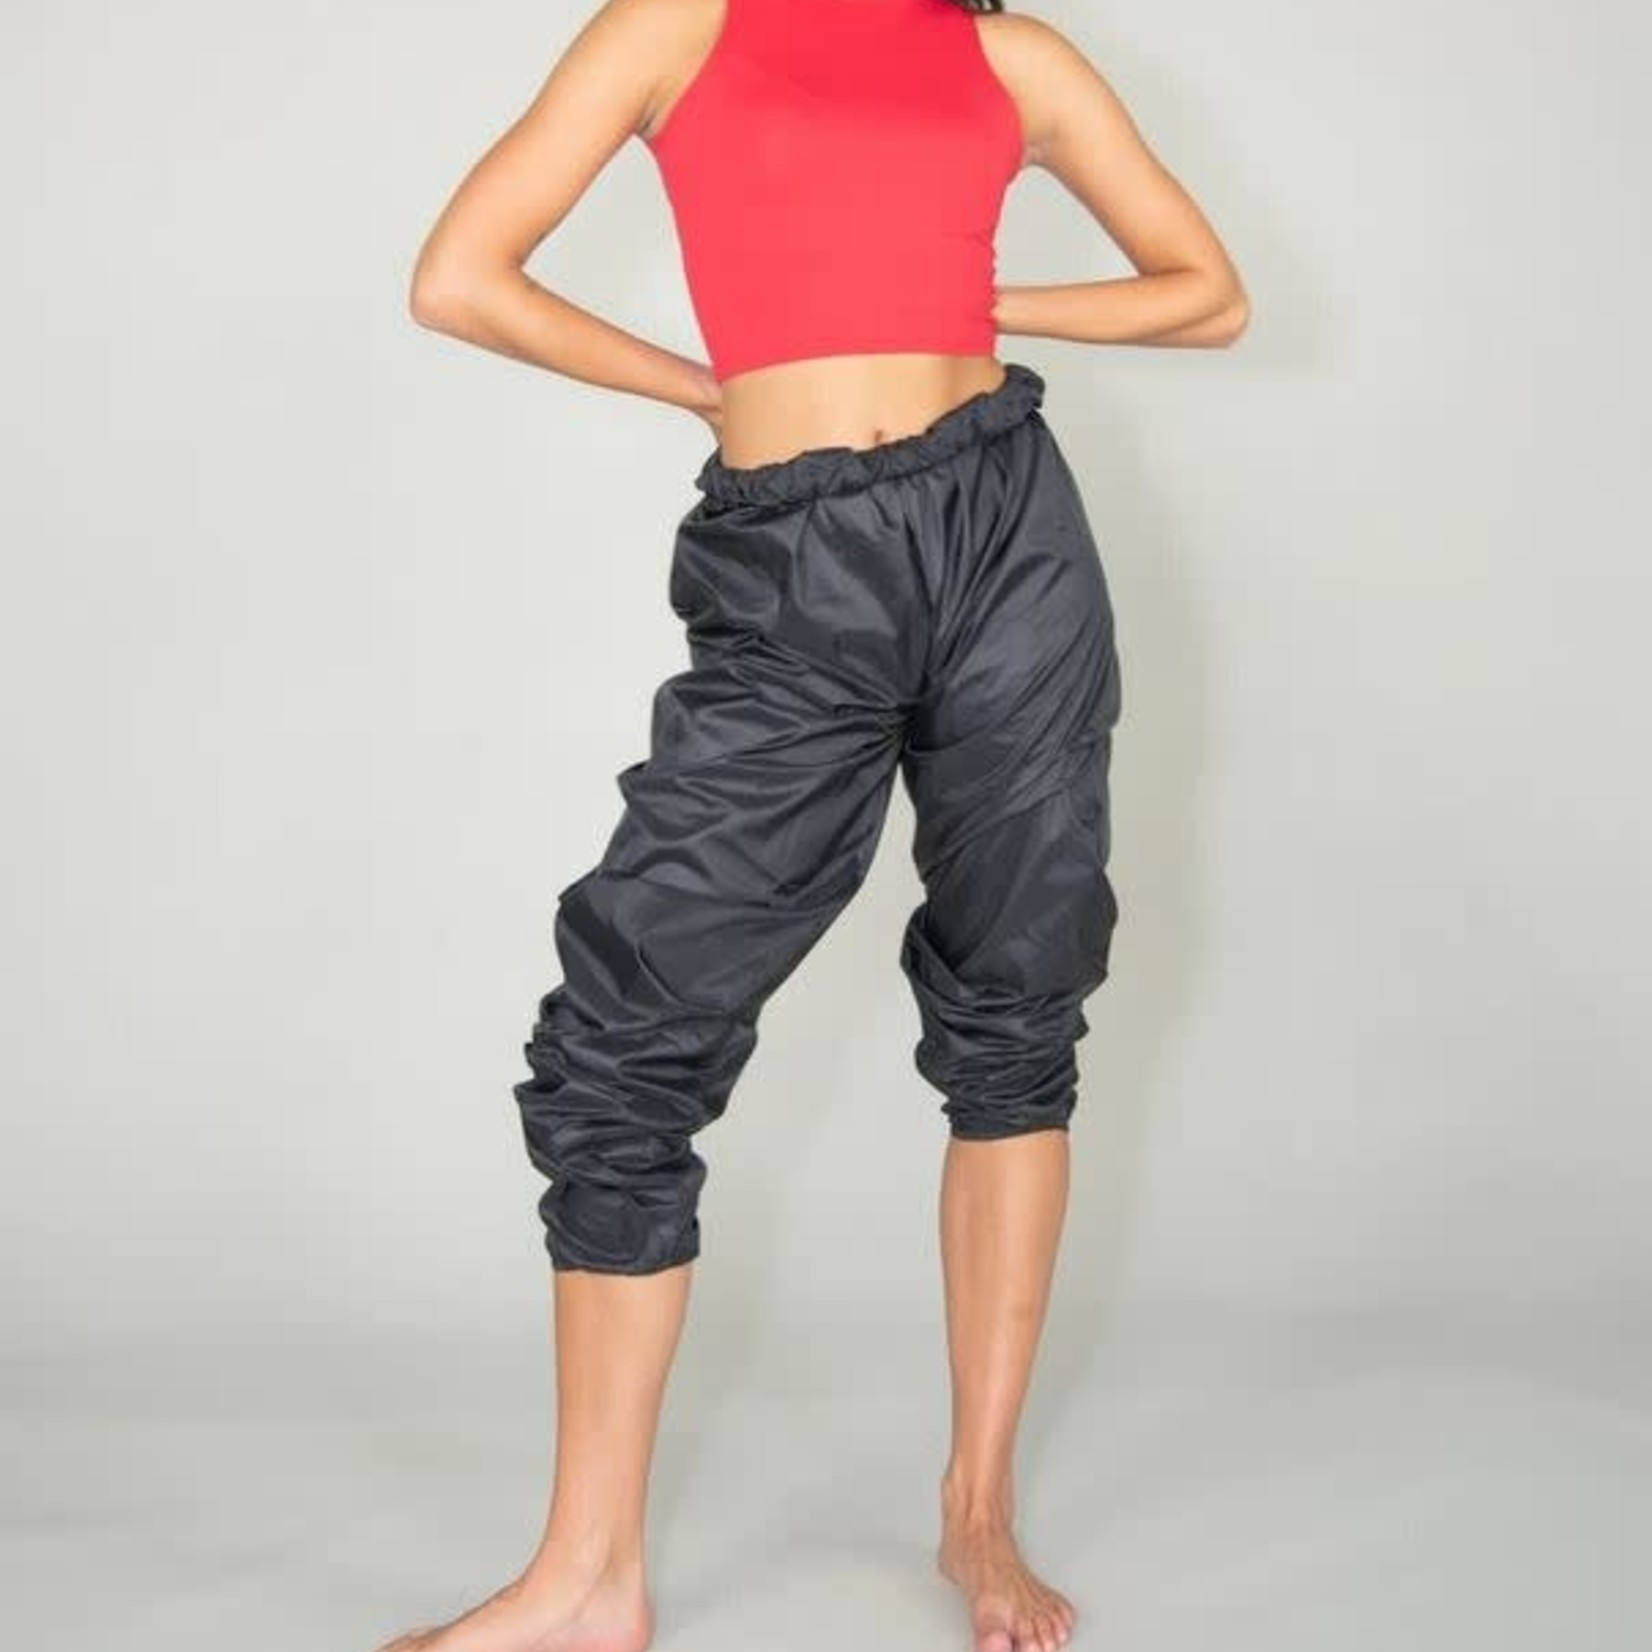 Body Wrappers Body Wrappers 701 Warm-up Pants